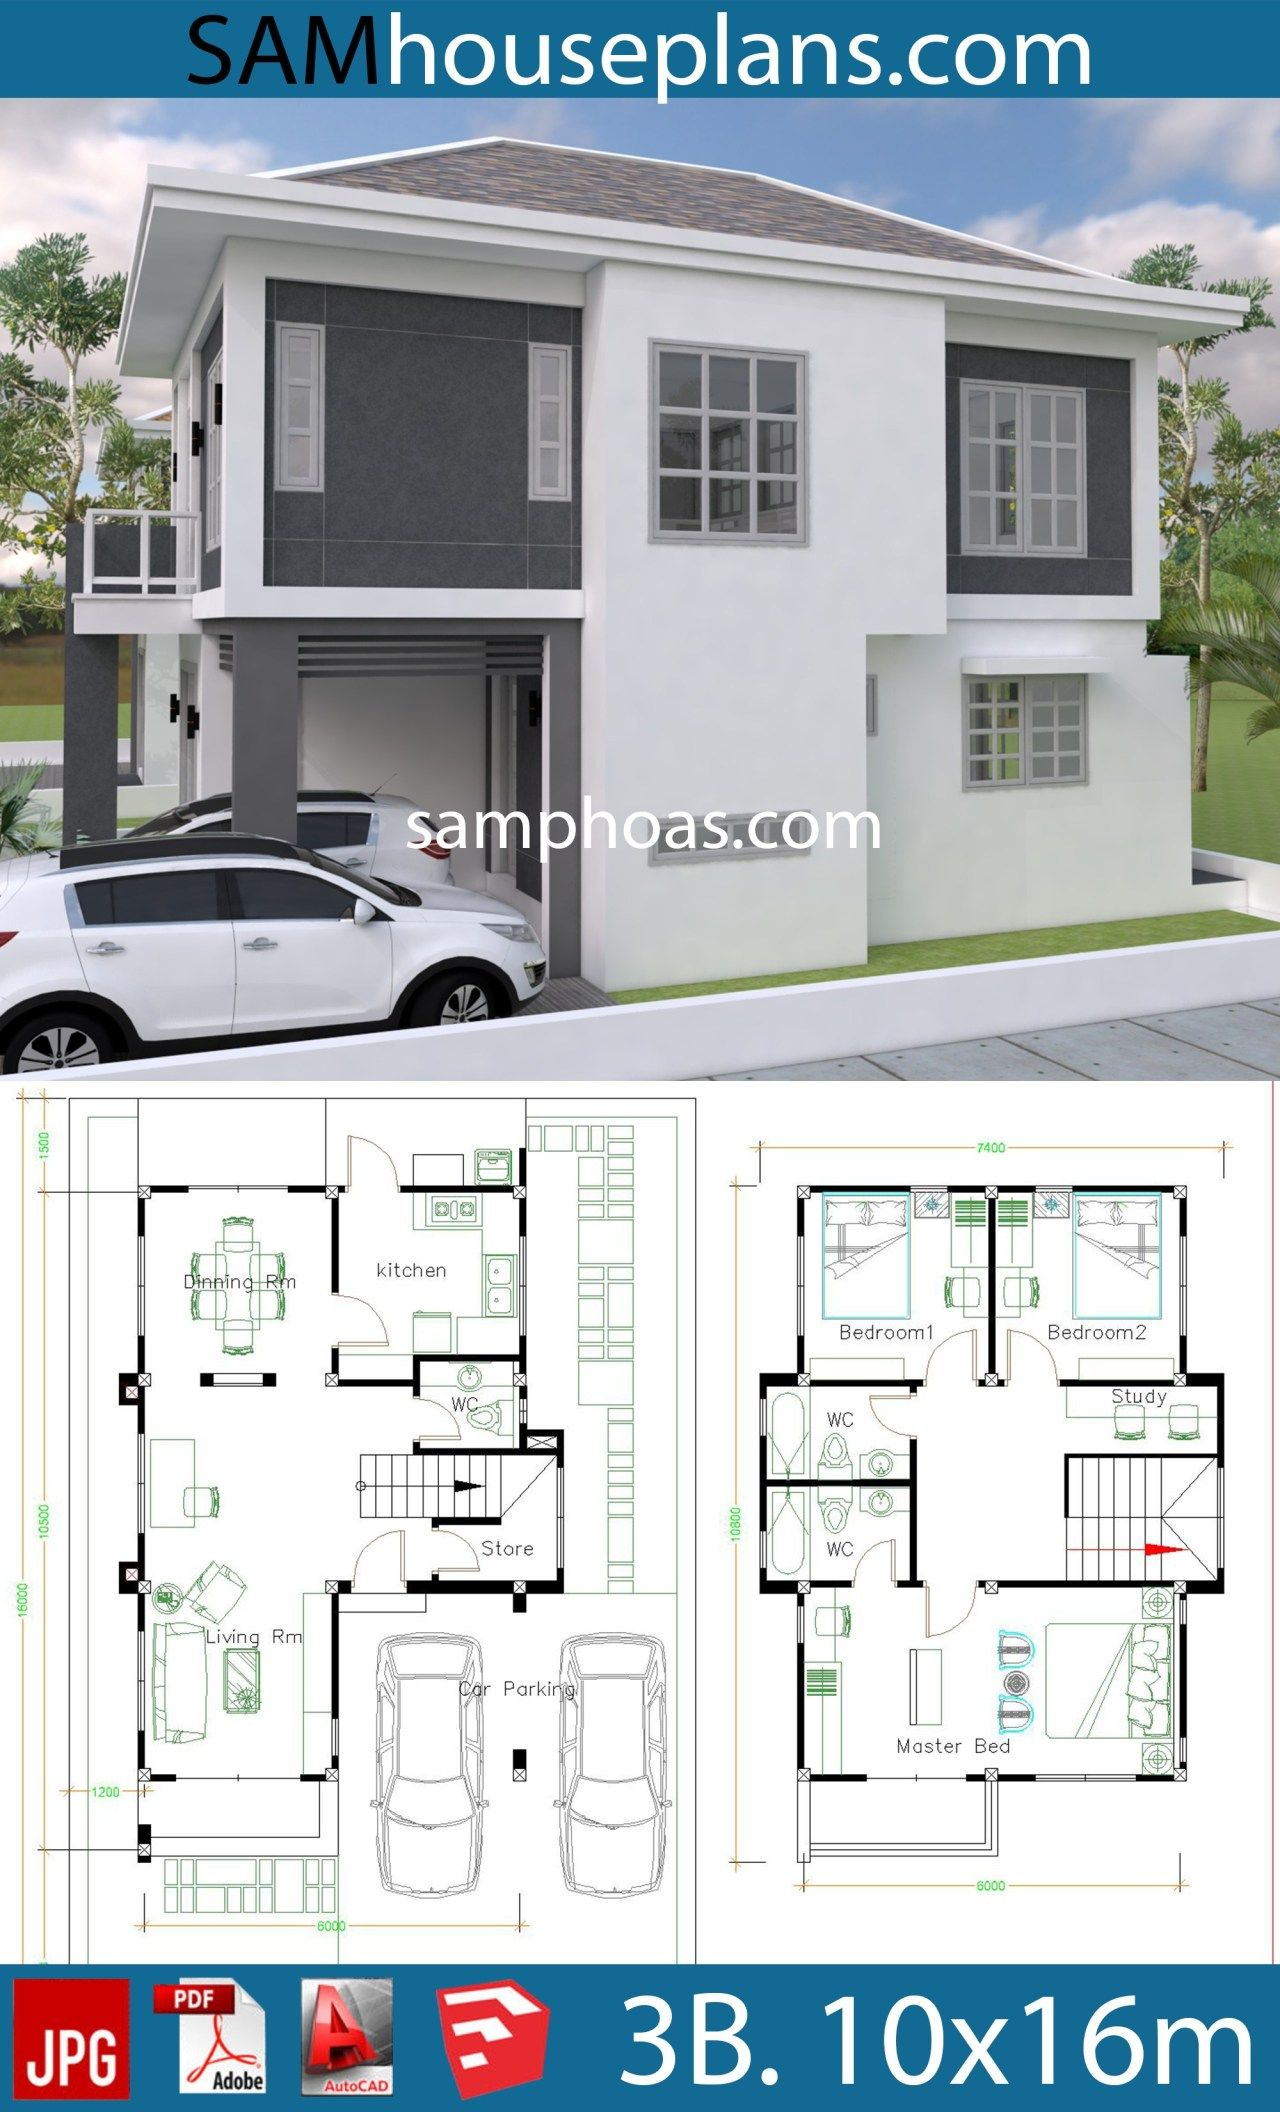 House Plans 10x16m With 3 Bedrooms Sam House Plans House Plans House Layout Plans Architectural Design House Plans